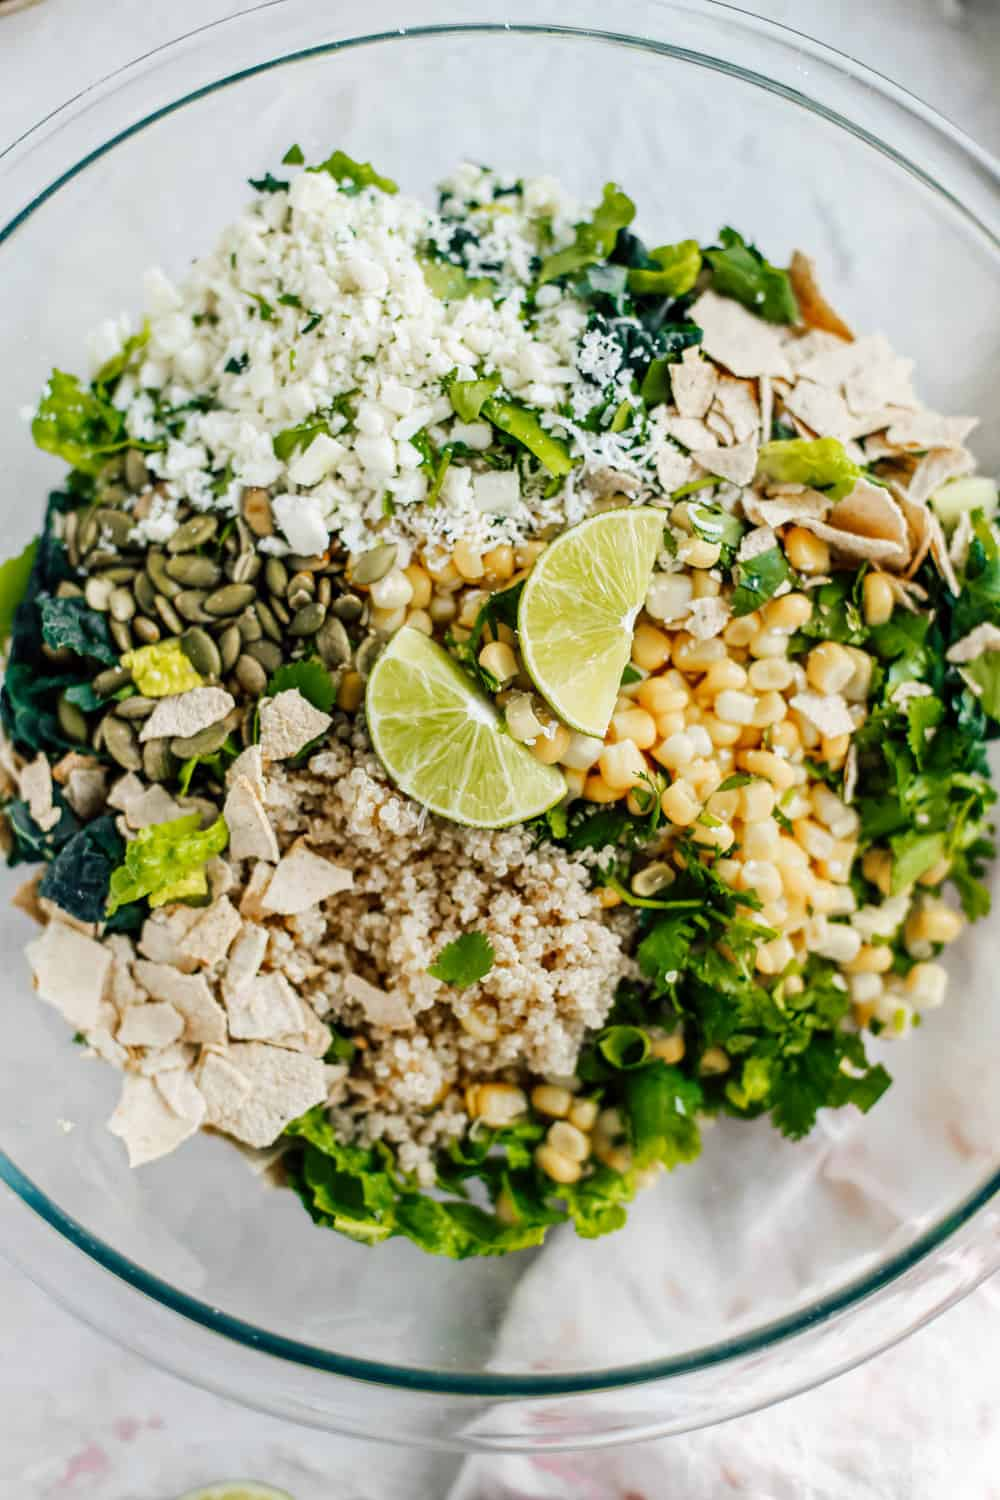 Kale Romaine Golden Corn Quinoa Cilantro and Lime Ingredients in a Clear Mixing Bowl